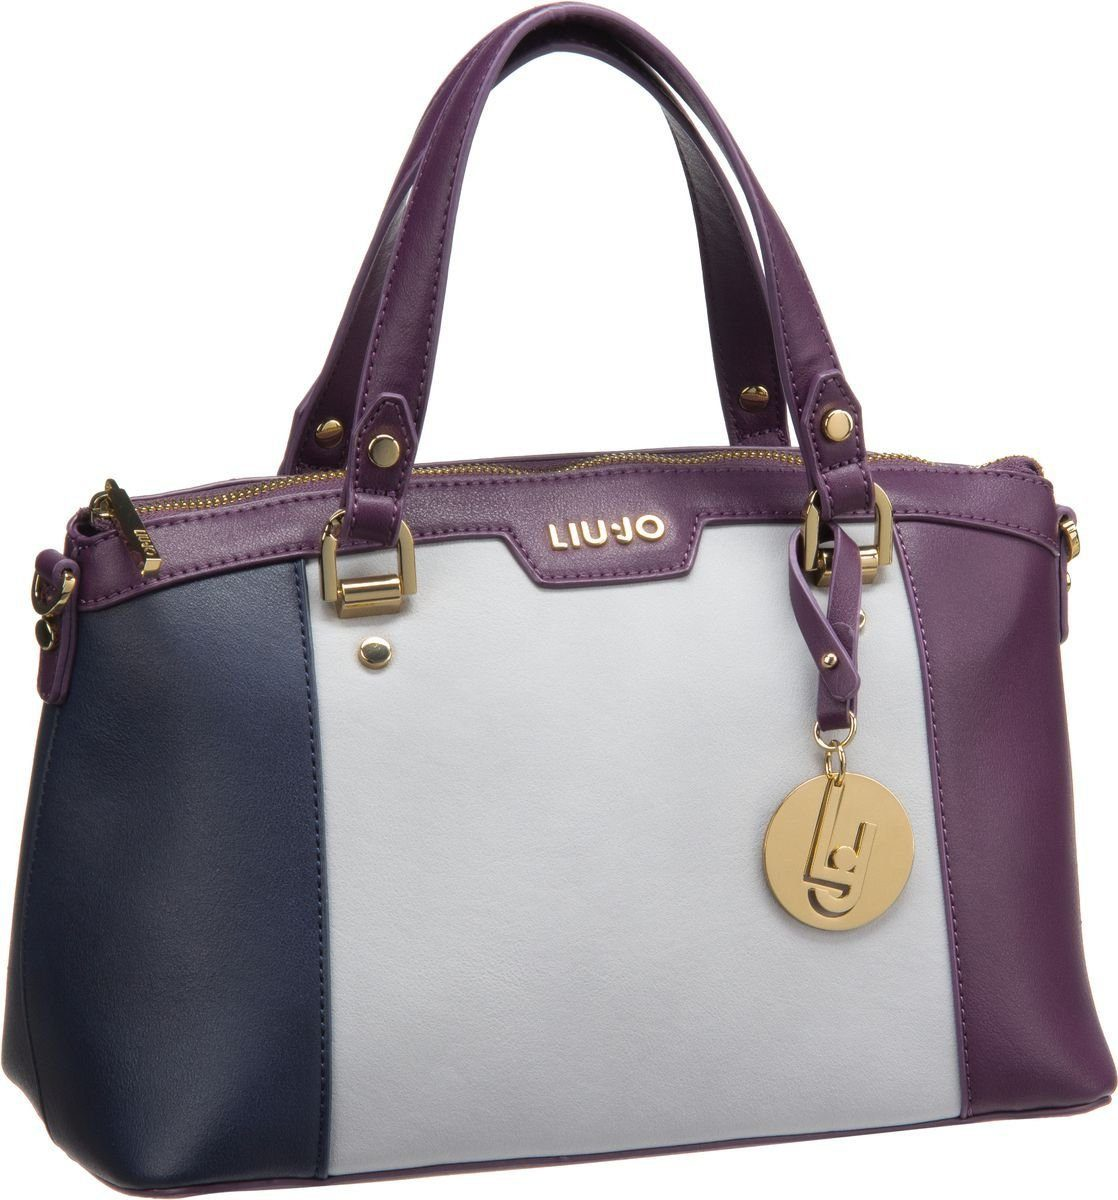 Liu Jo New Cannes Mini Bauletto